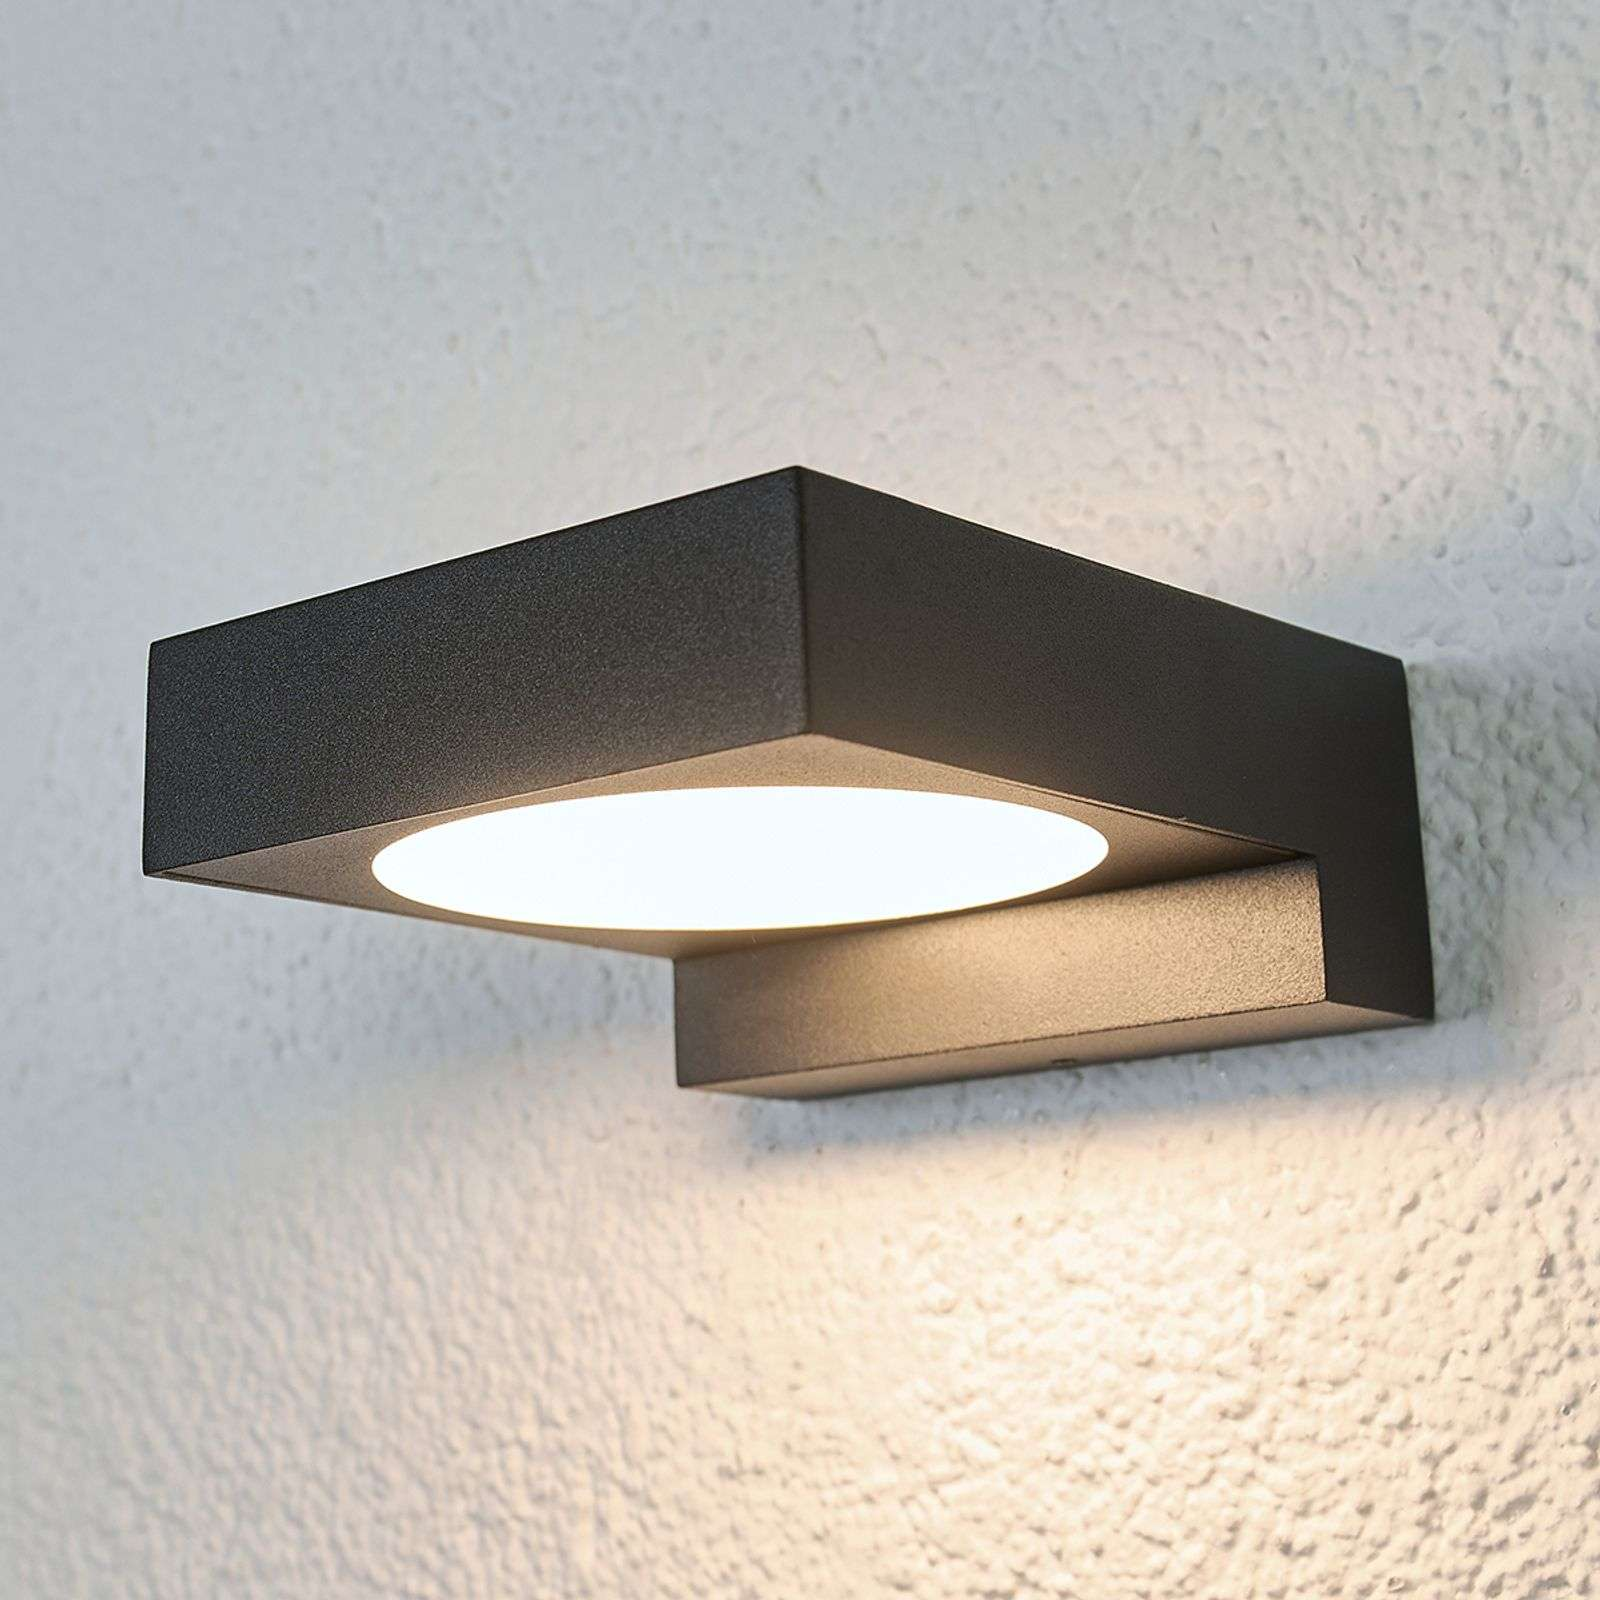 Applique LED nera Natalja da bagno